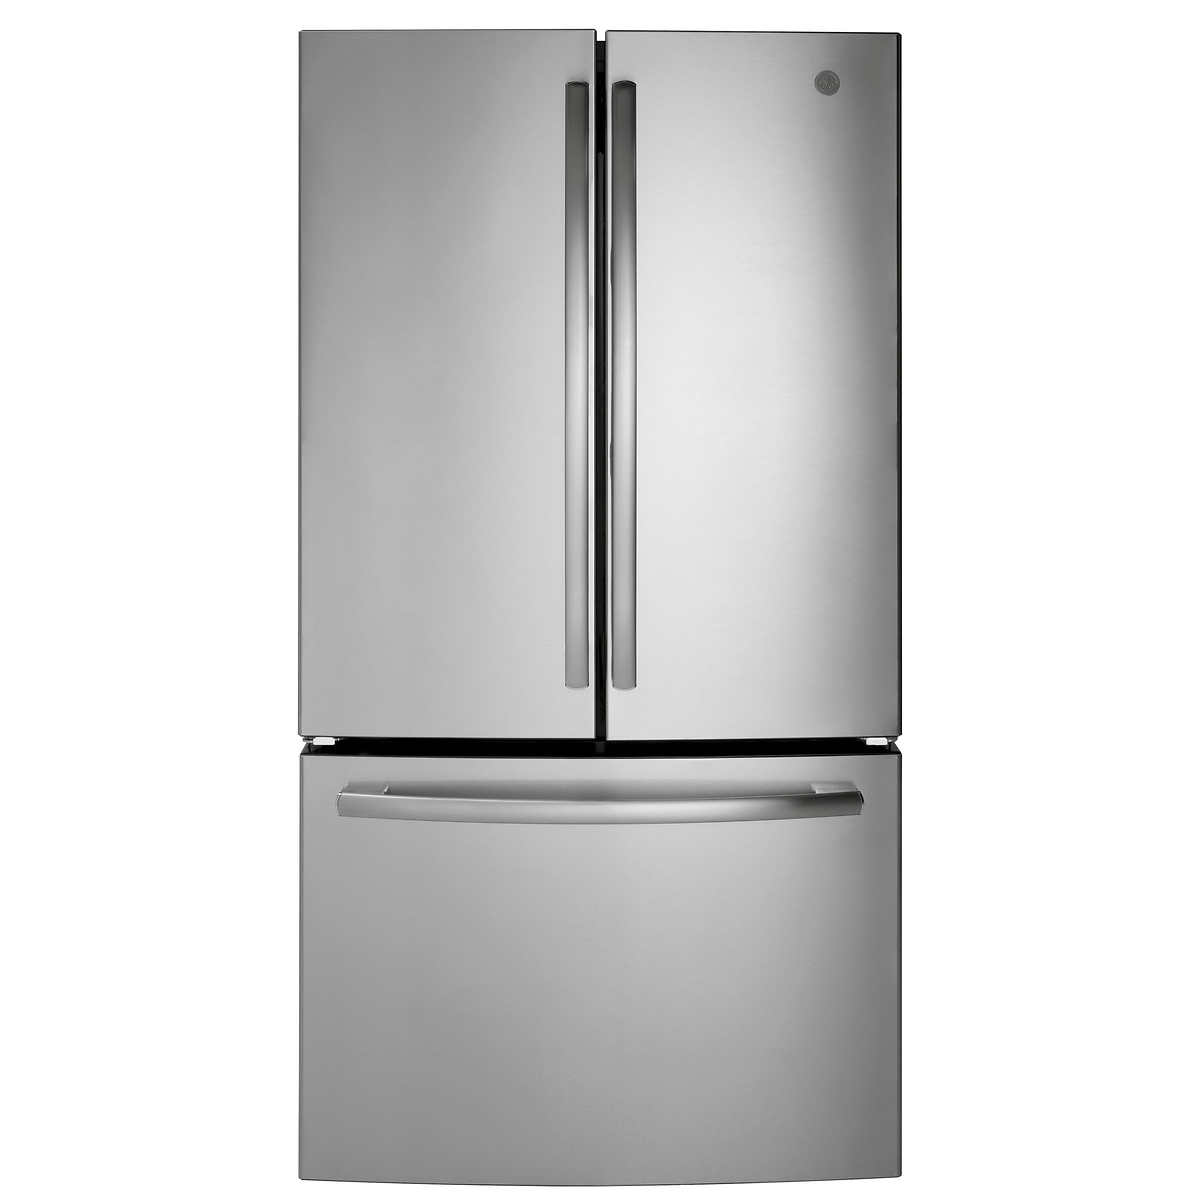 ge 27.0cuft french-door refrigerator with spill-proof shelves